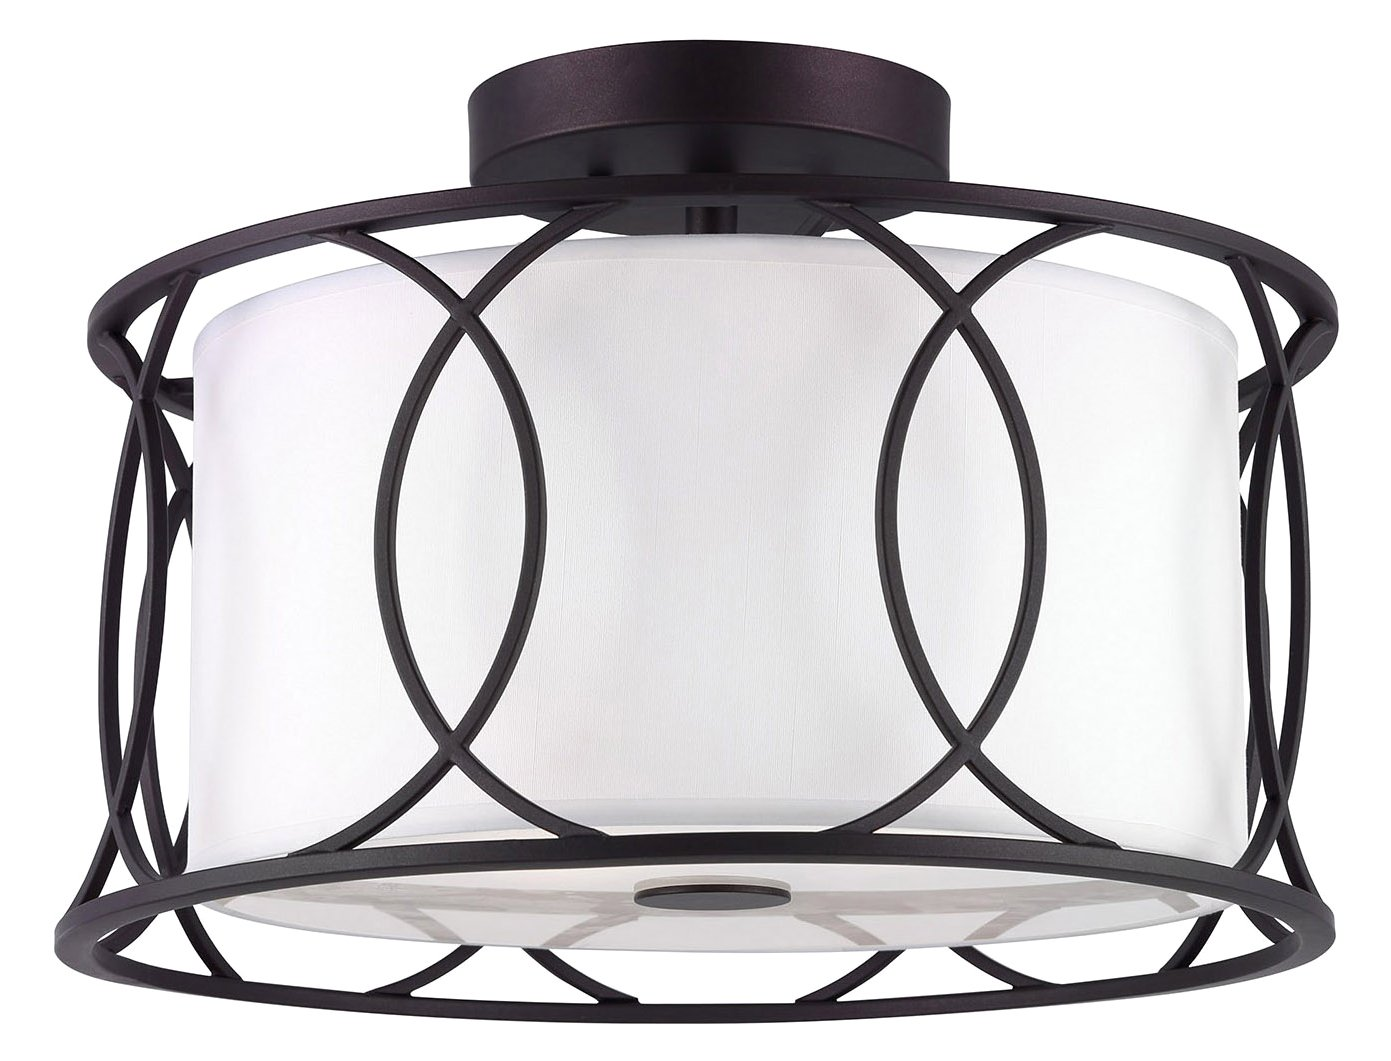 CANARM ISF320A02ORB Monica 2 Bulb Semi-Flush Mount with White Fabric Shade, Oil Rubbed Bronze by Canarm